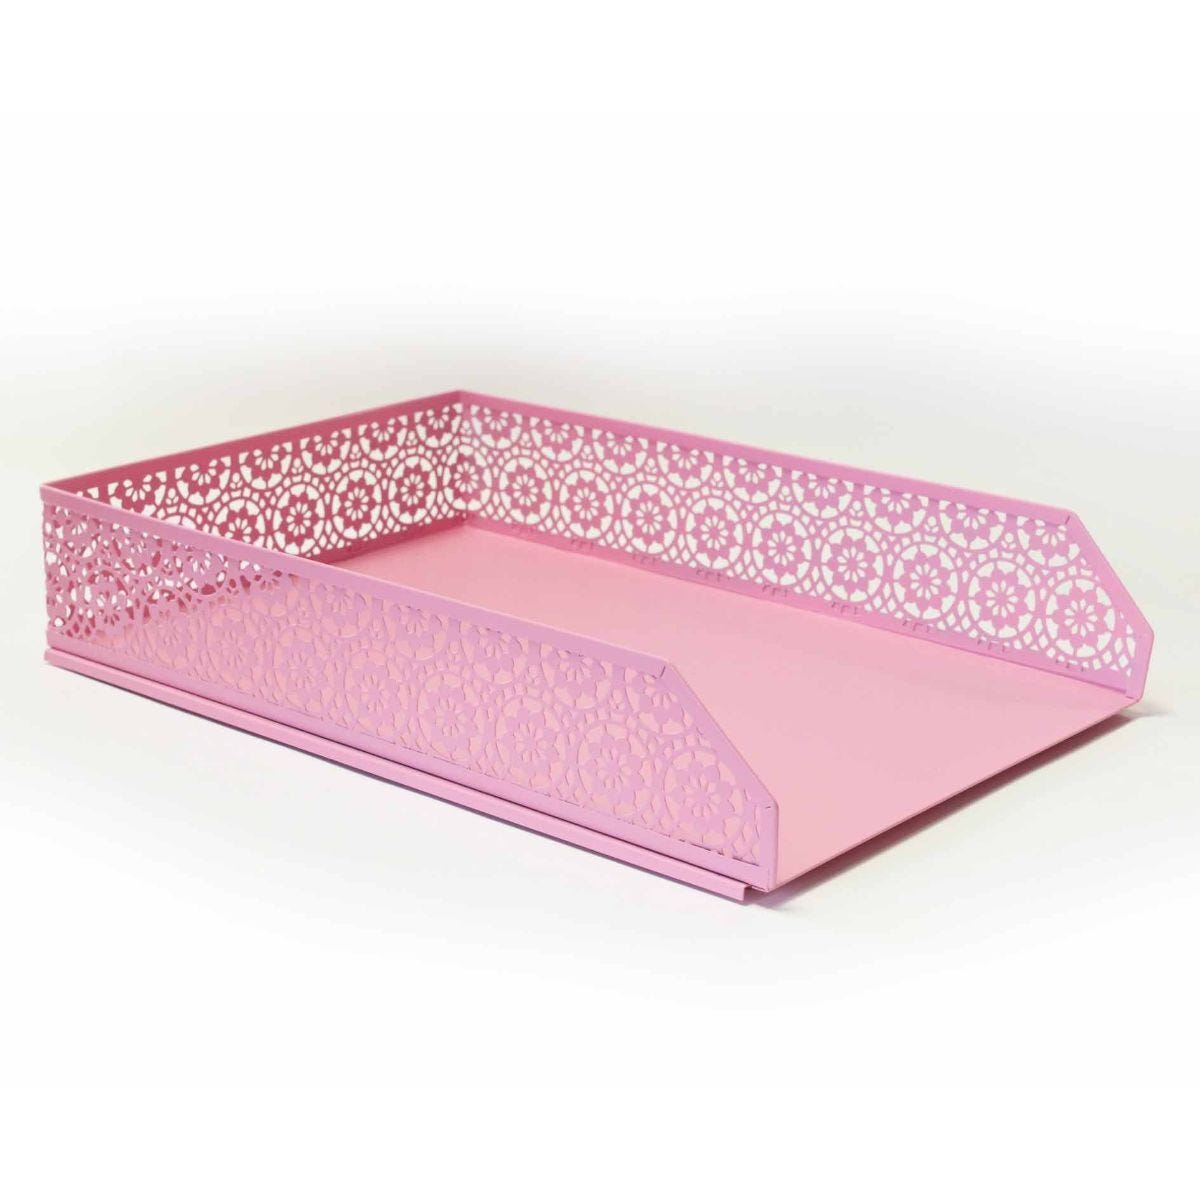 Ryman Floral Metal Letter Tray A4 Pastel Pink